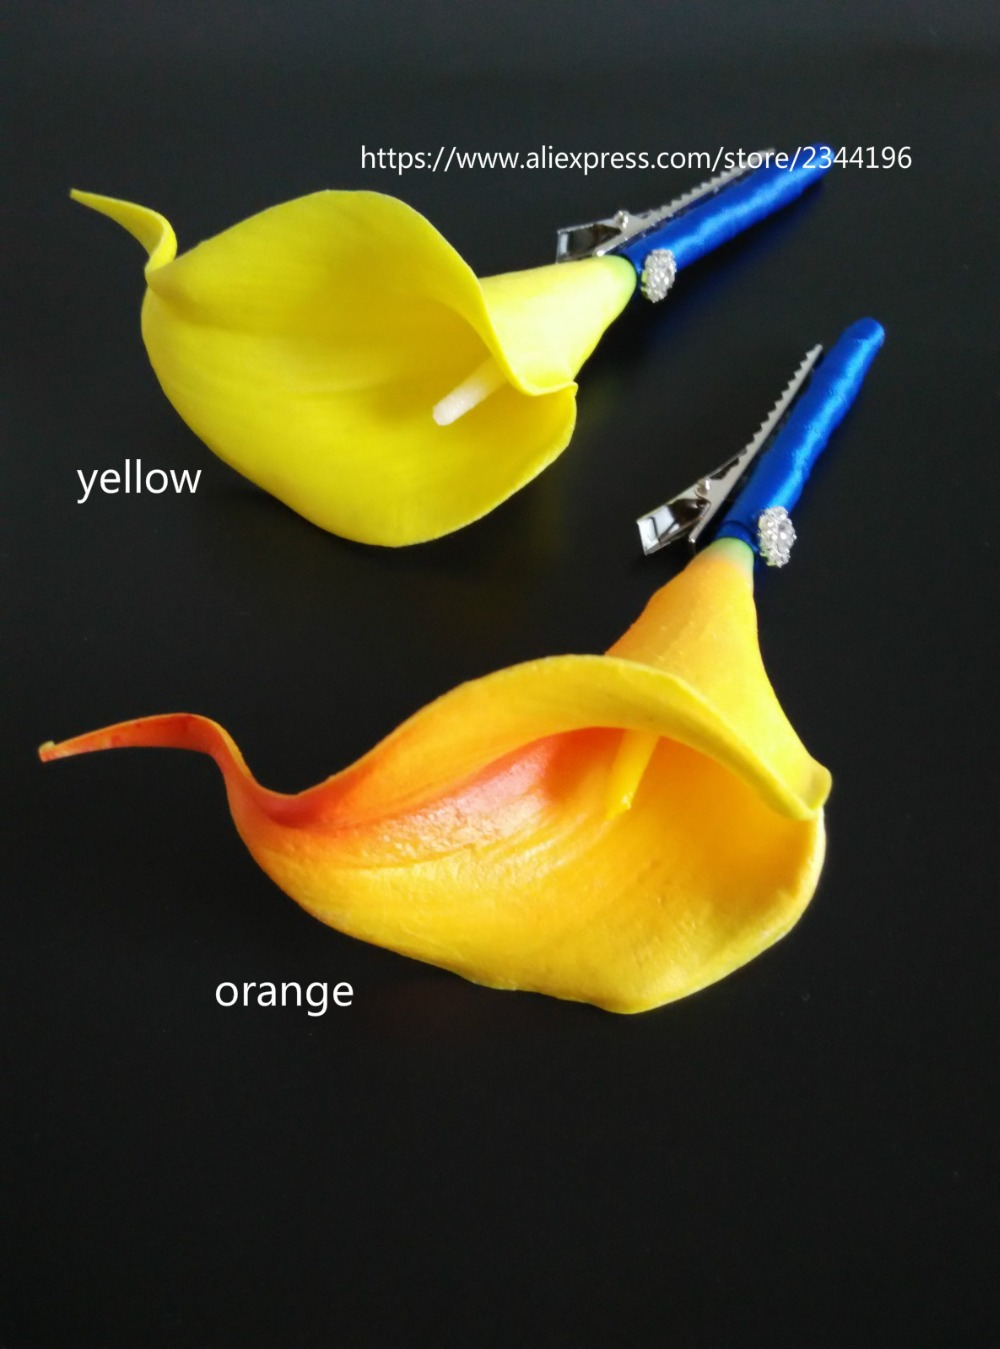 wedding party men's boutonnieres,yellow orange calla lily with ribbon crystal,real touch boutonniere for groom bestmen